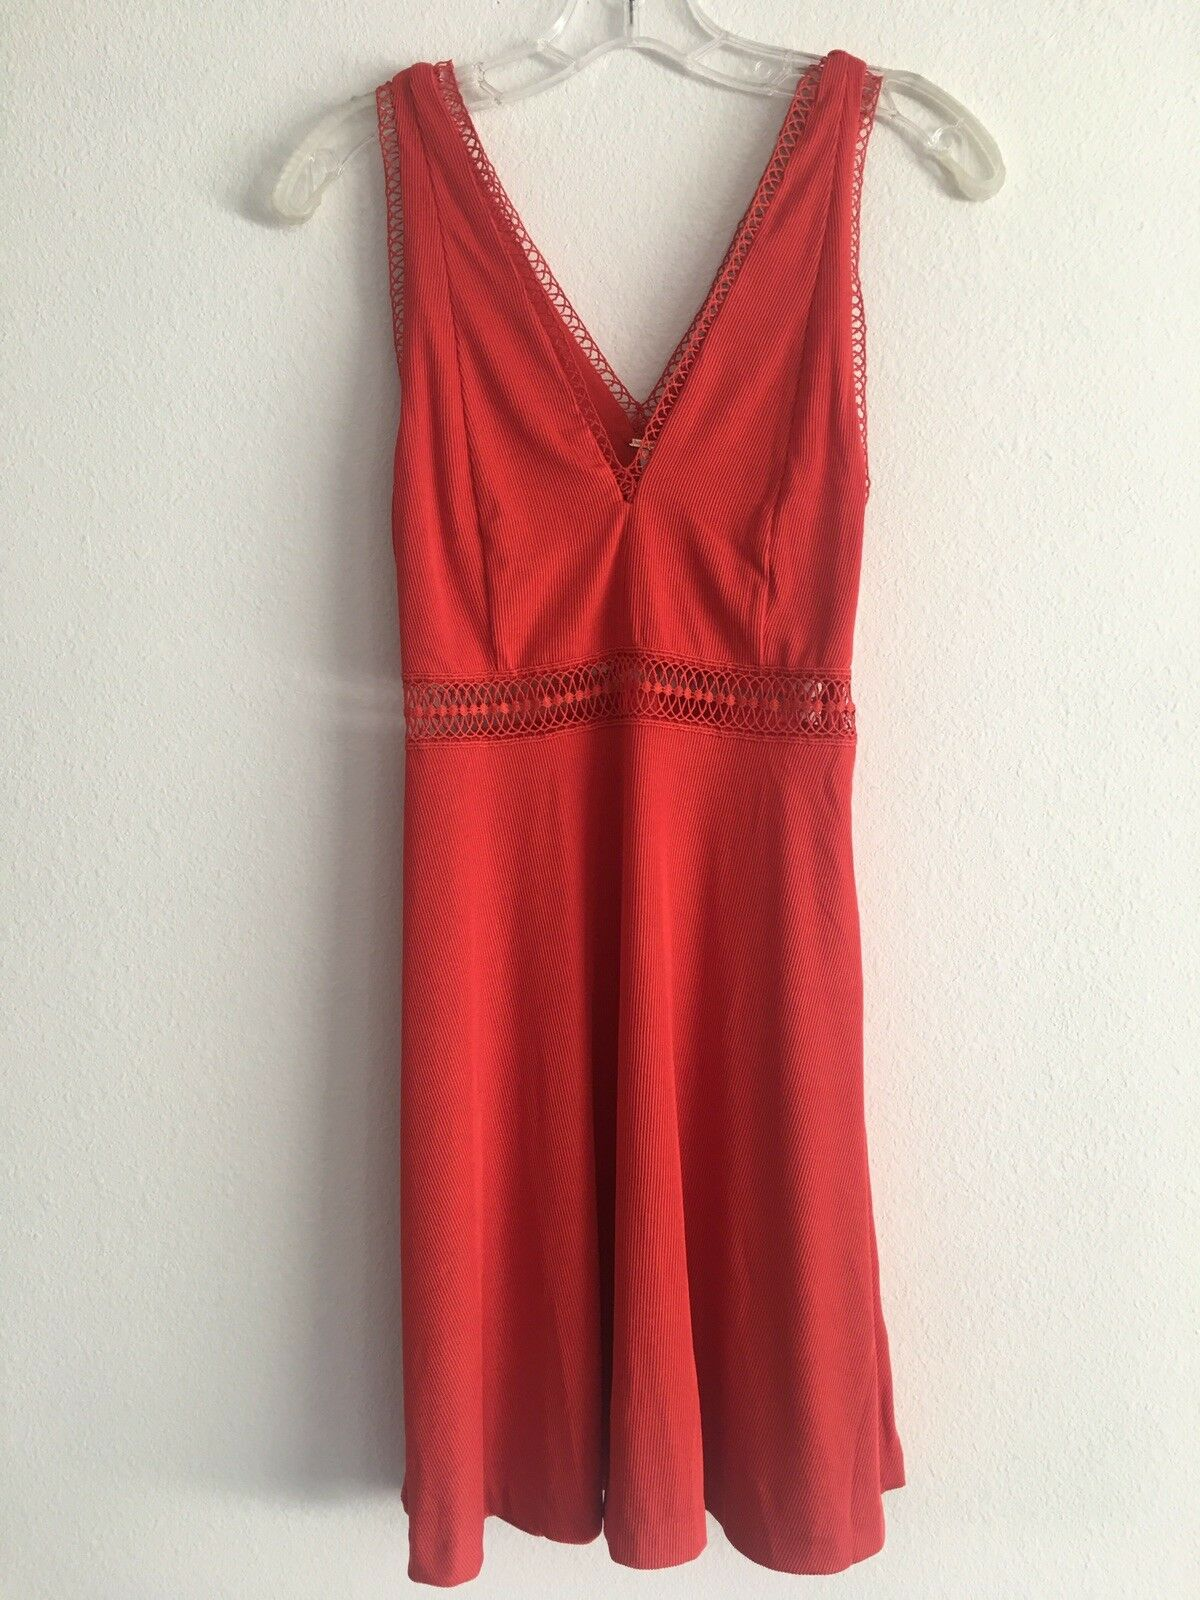 Free People, King Of My Heart A-Line Dress, Red. Sz.0, NWT.